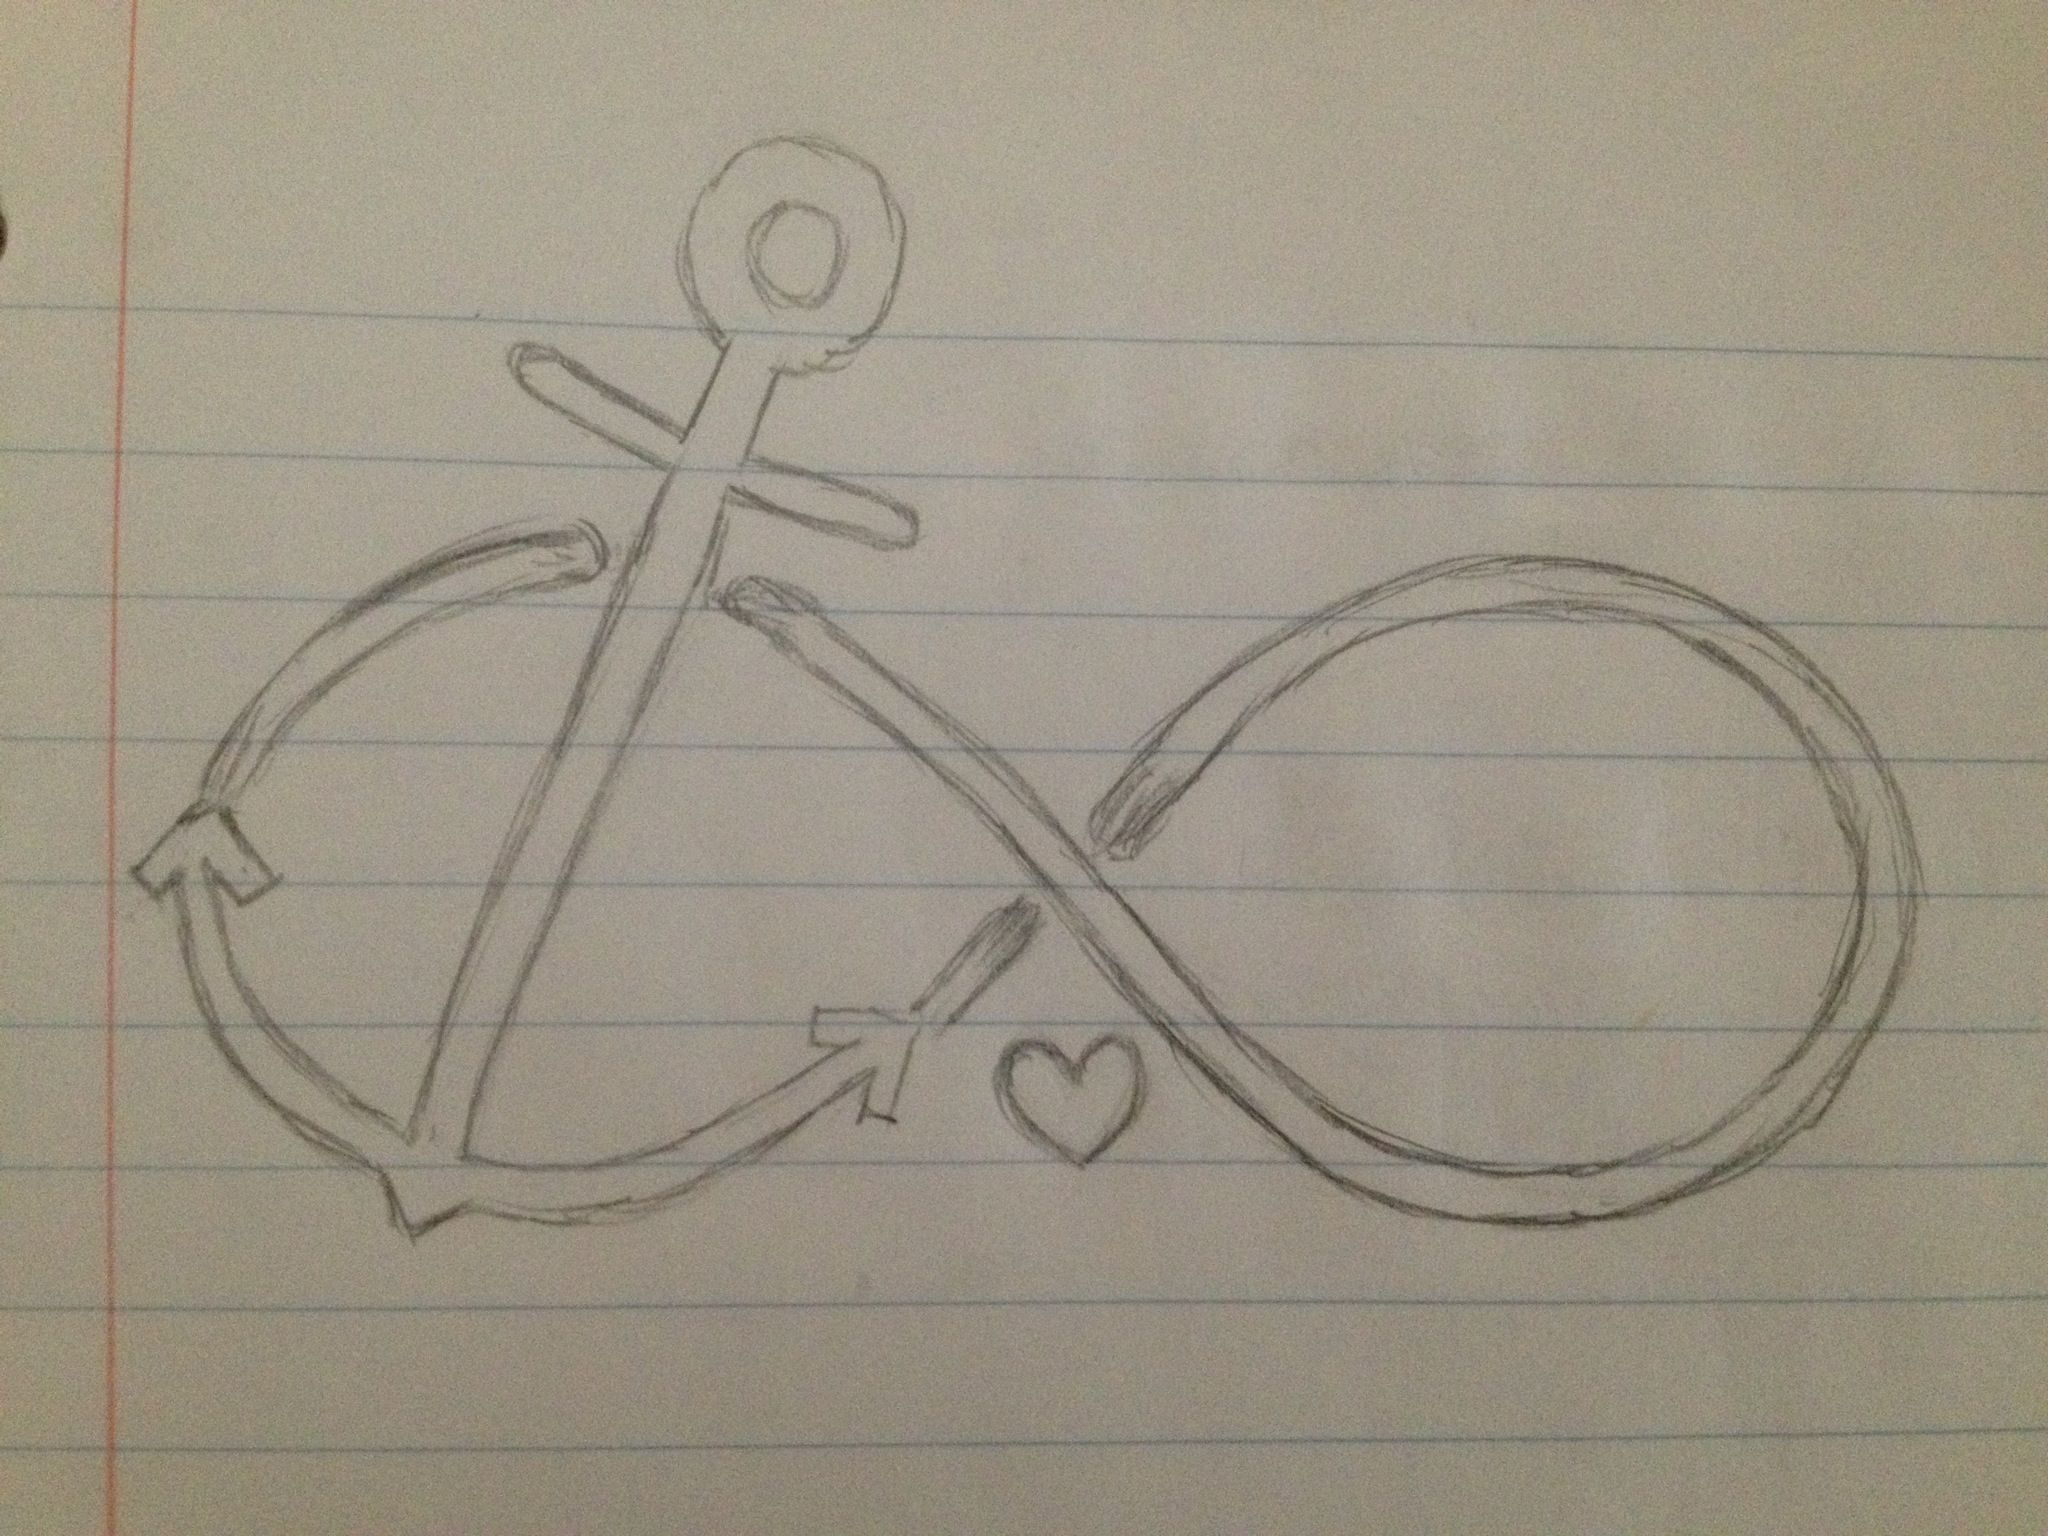 2048x1536 Possible Tattoo Sketch! Anchor Infinity Sign. I Free Handed It